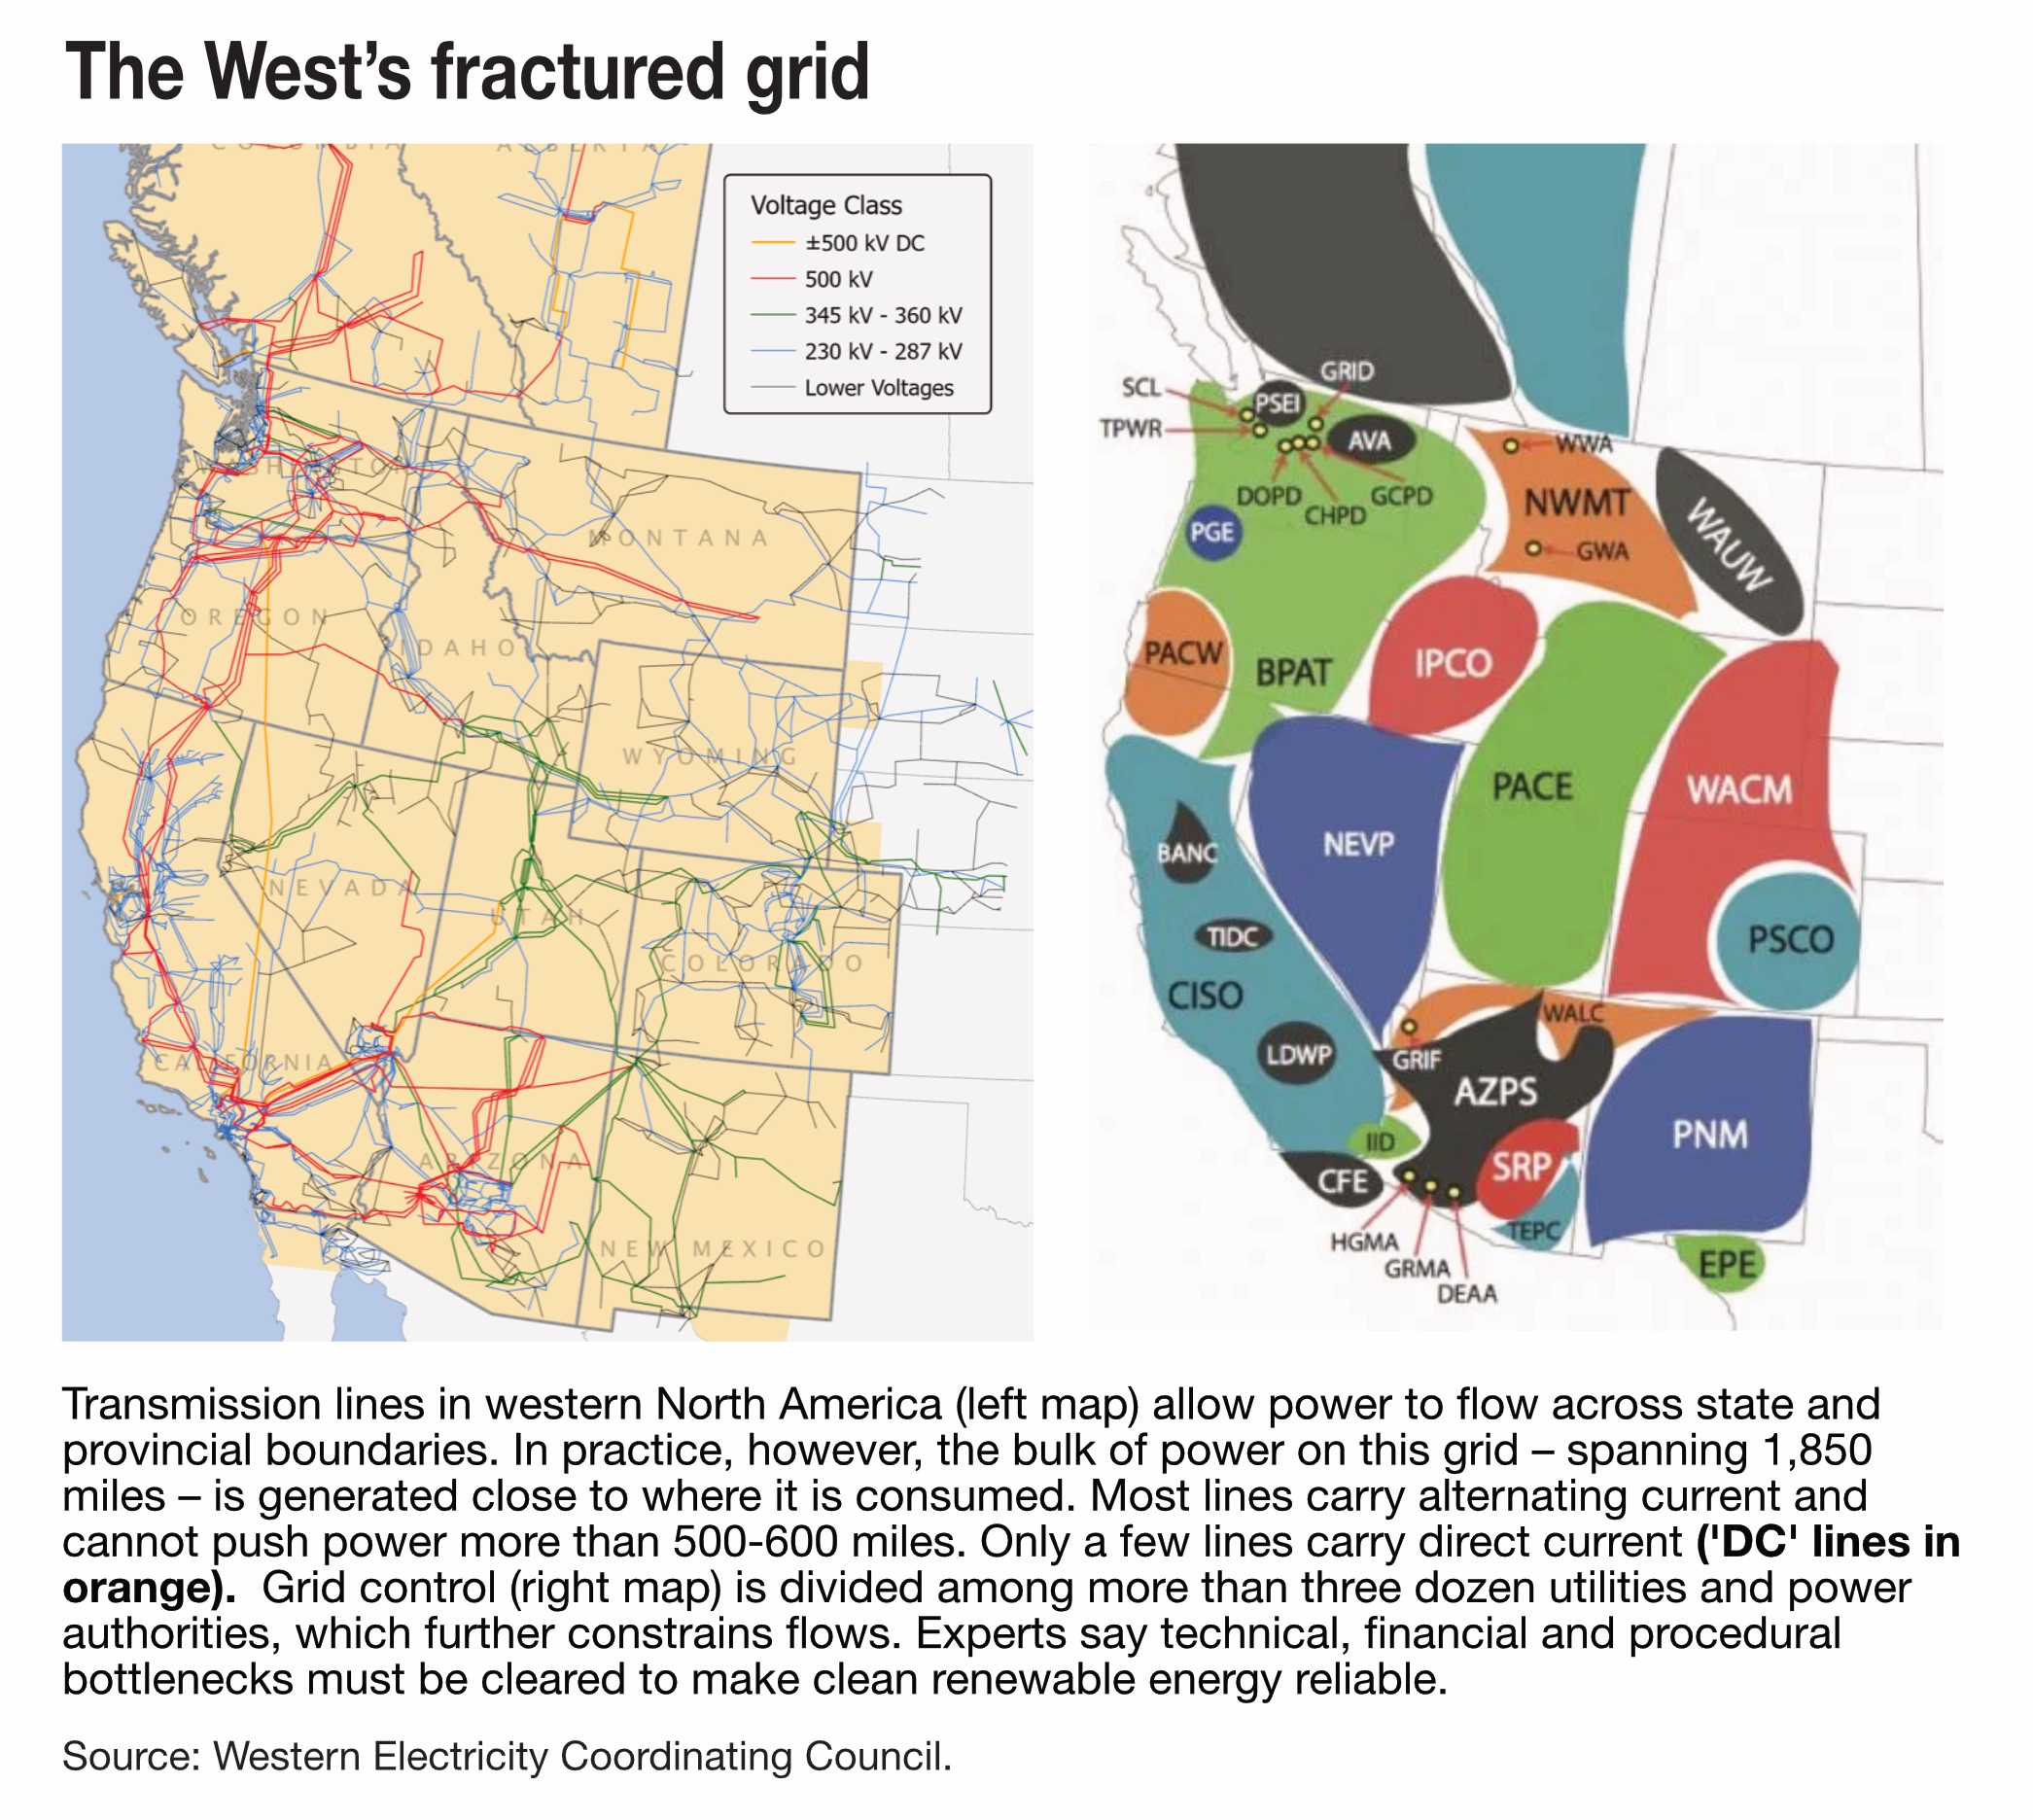 The West's fractured grid